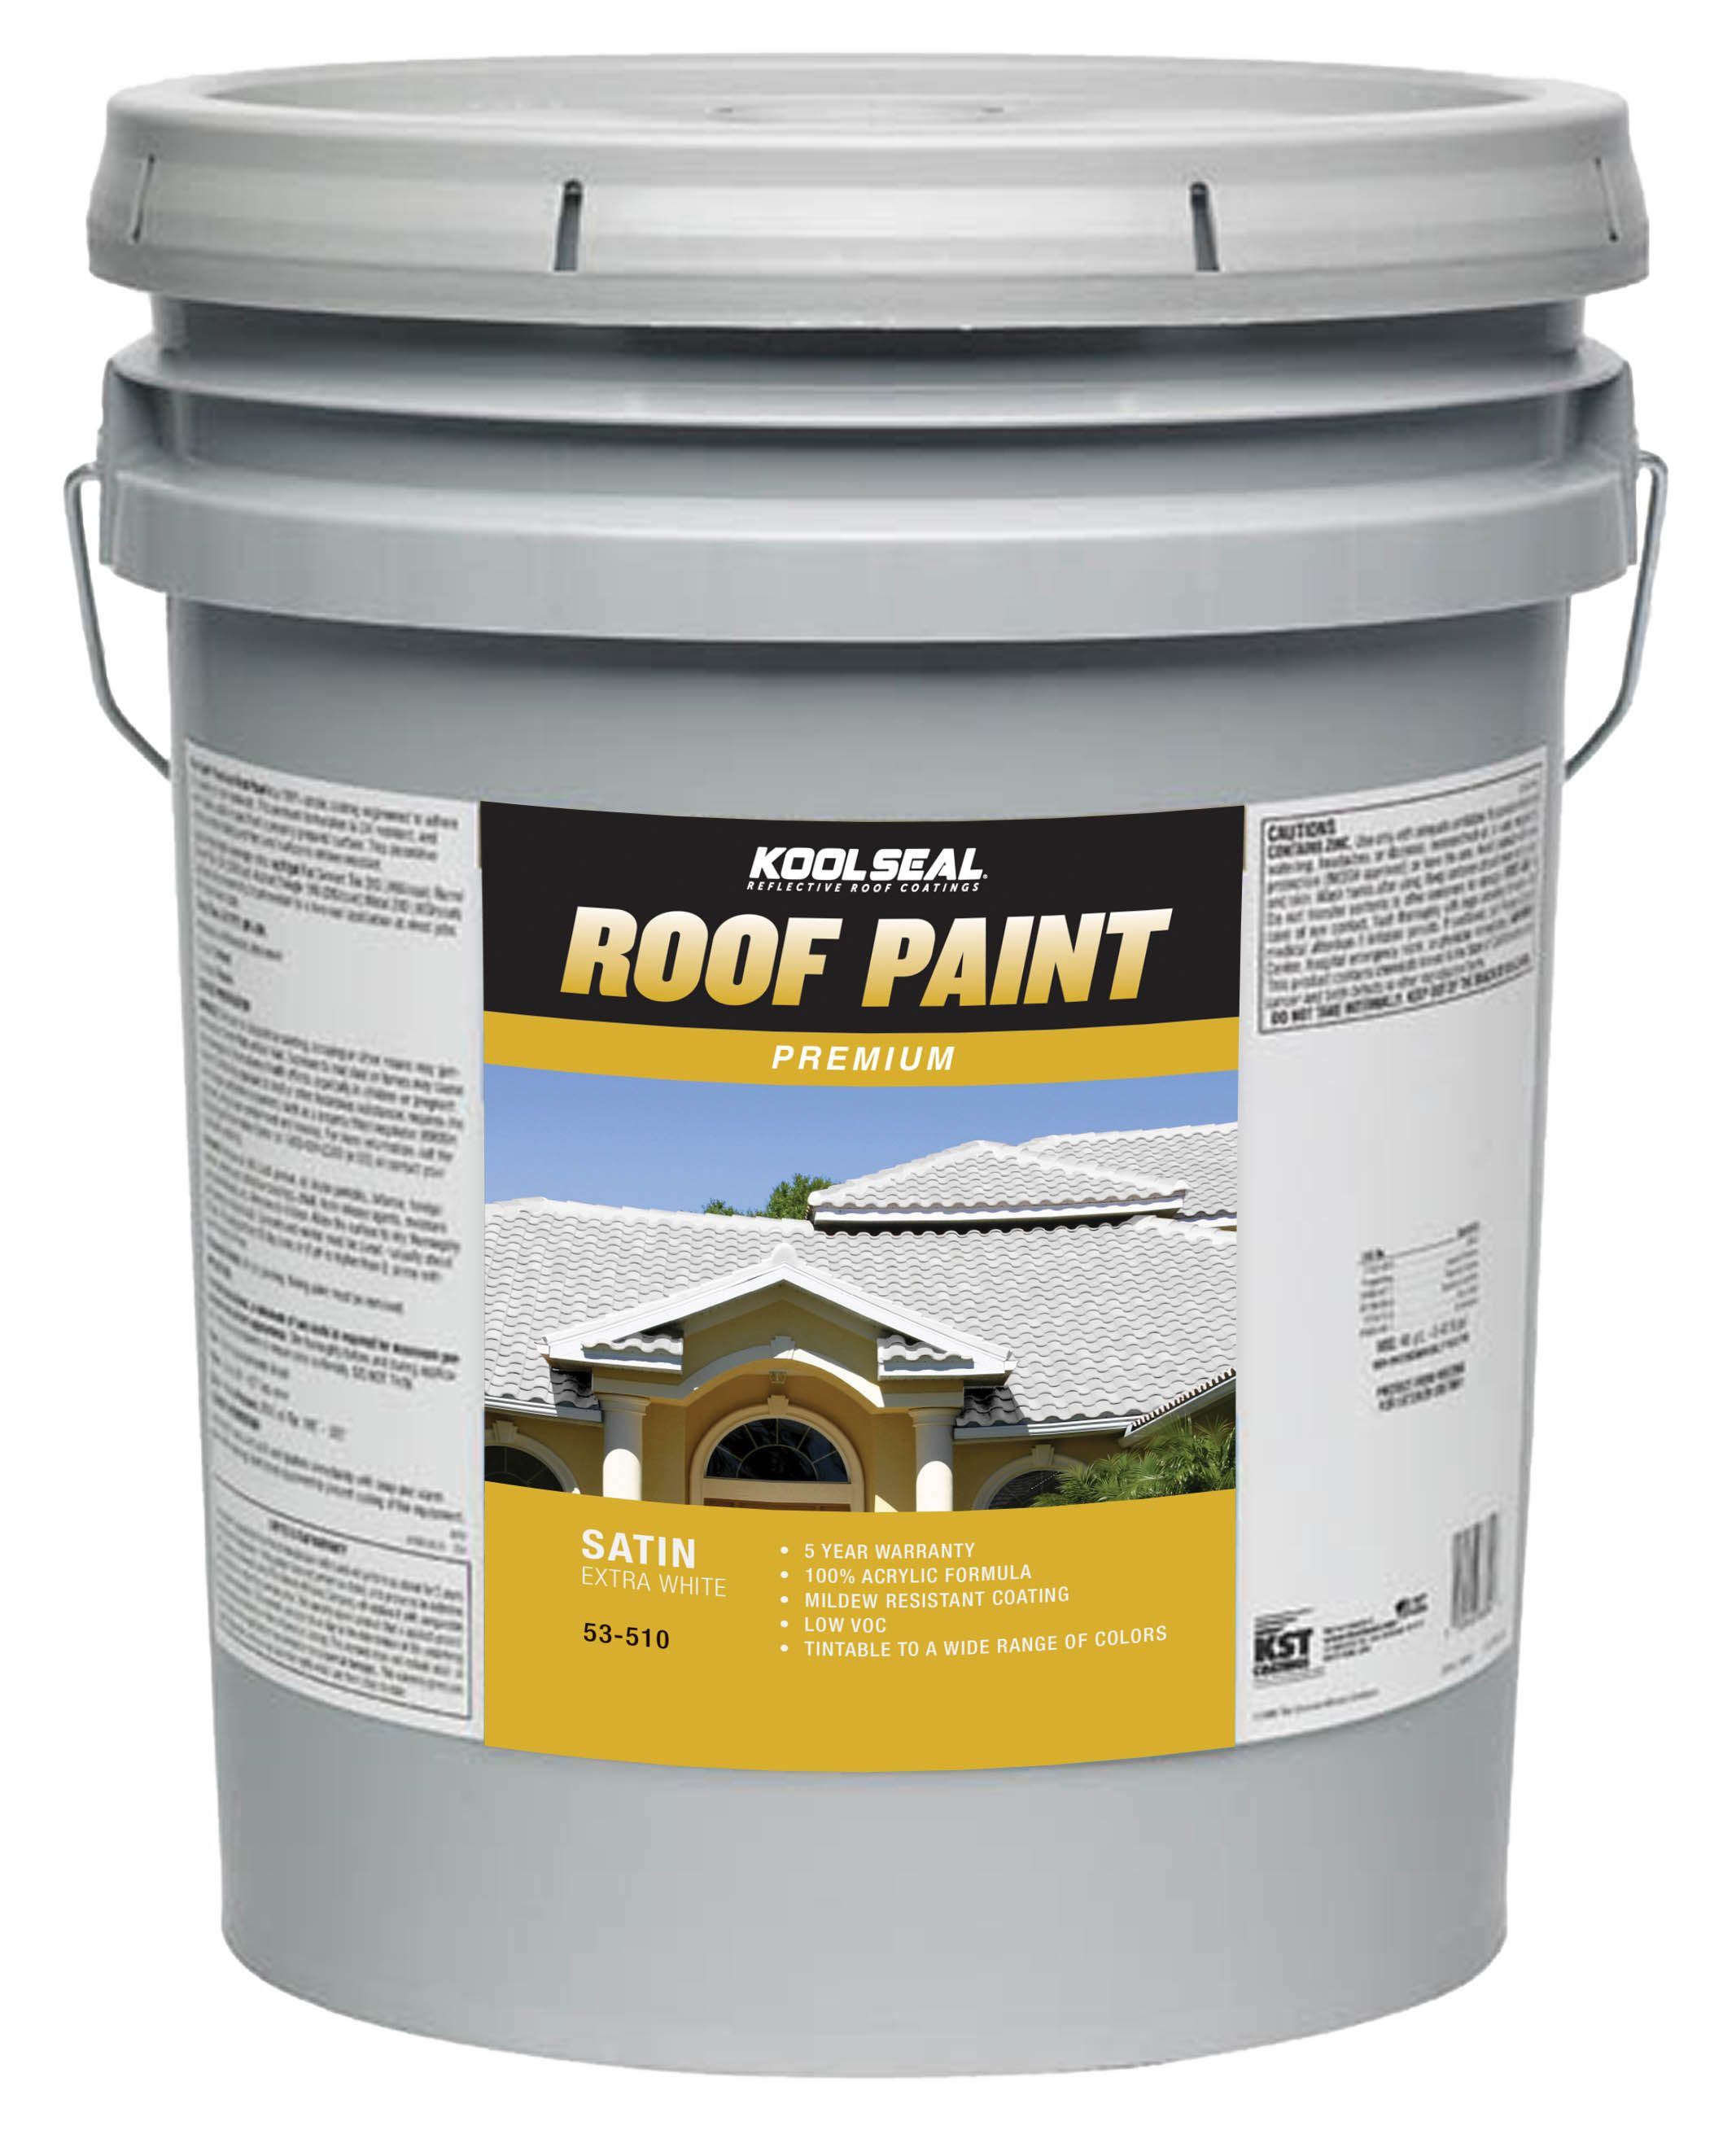 Roof Paints And Coatings In 2020 Roof Paint Roof Coating Cool Roof